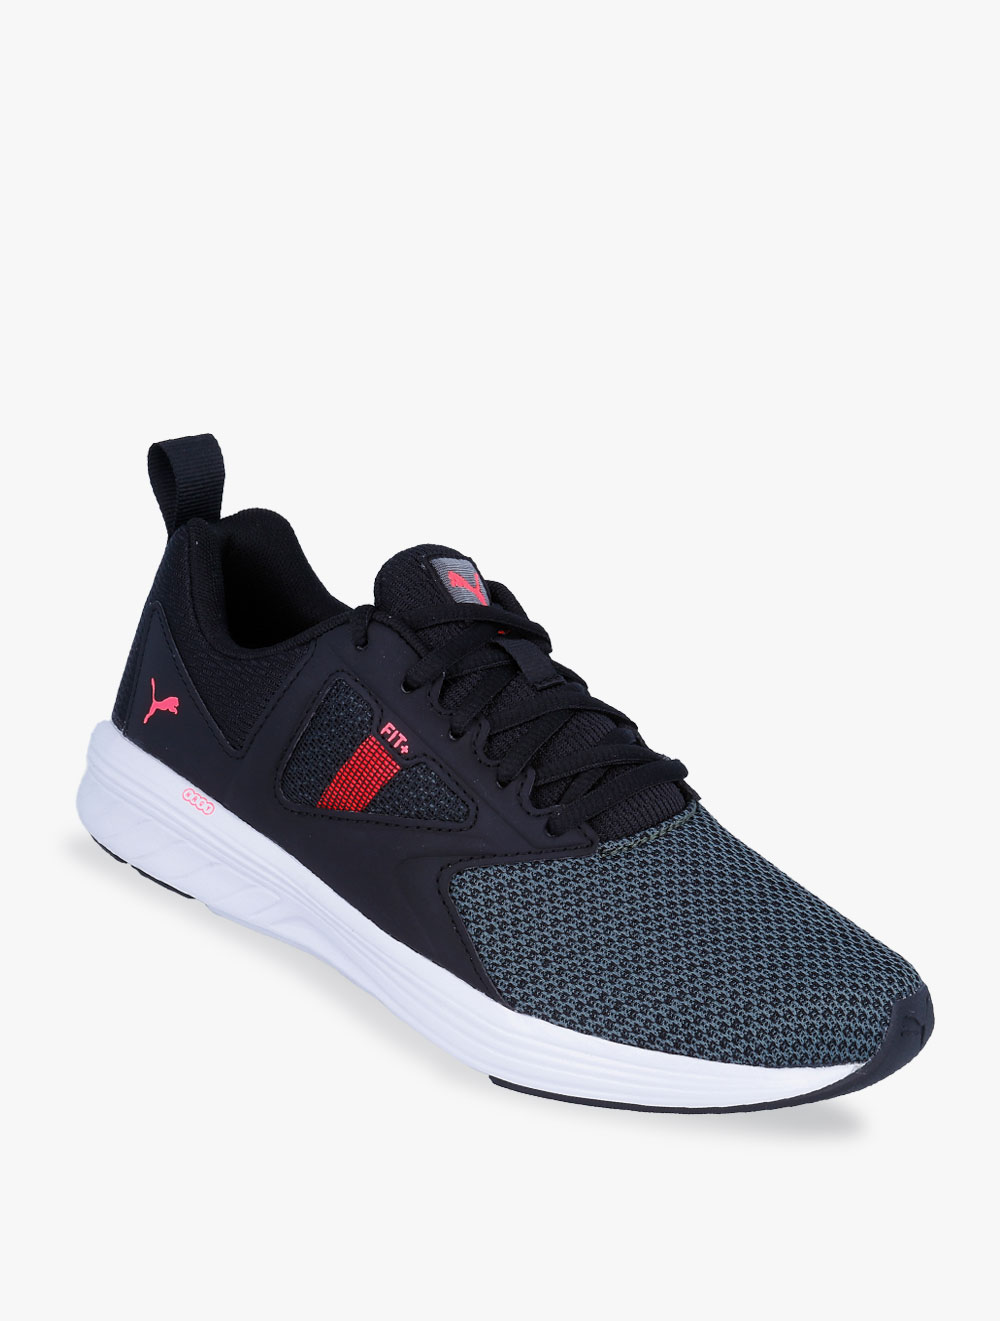 Puma Nrgy Asteroid Women'S Running Shoes - Black